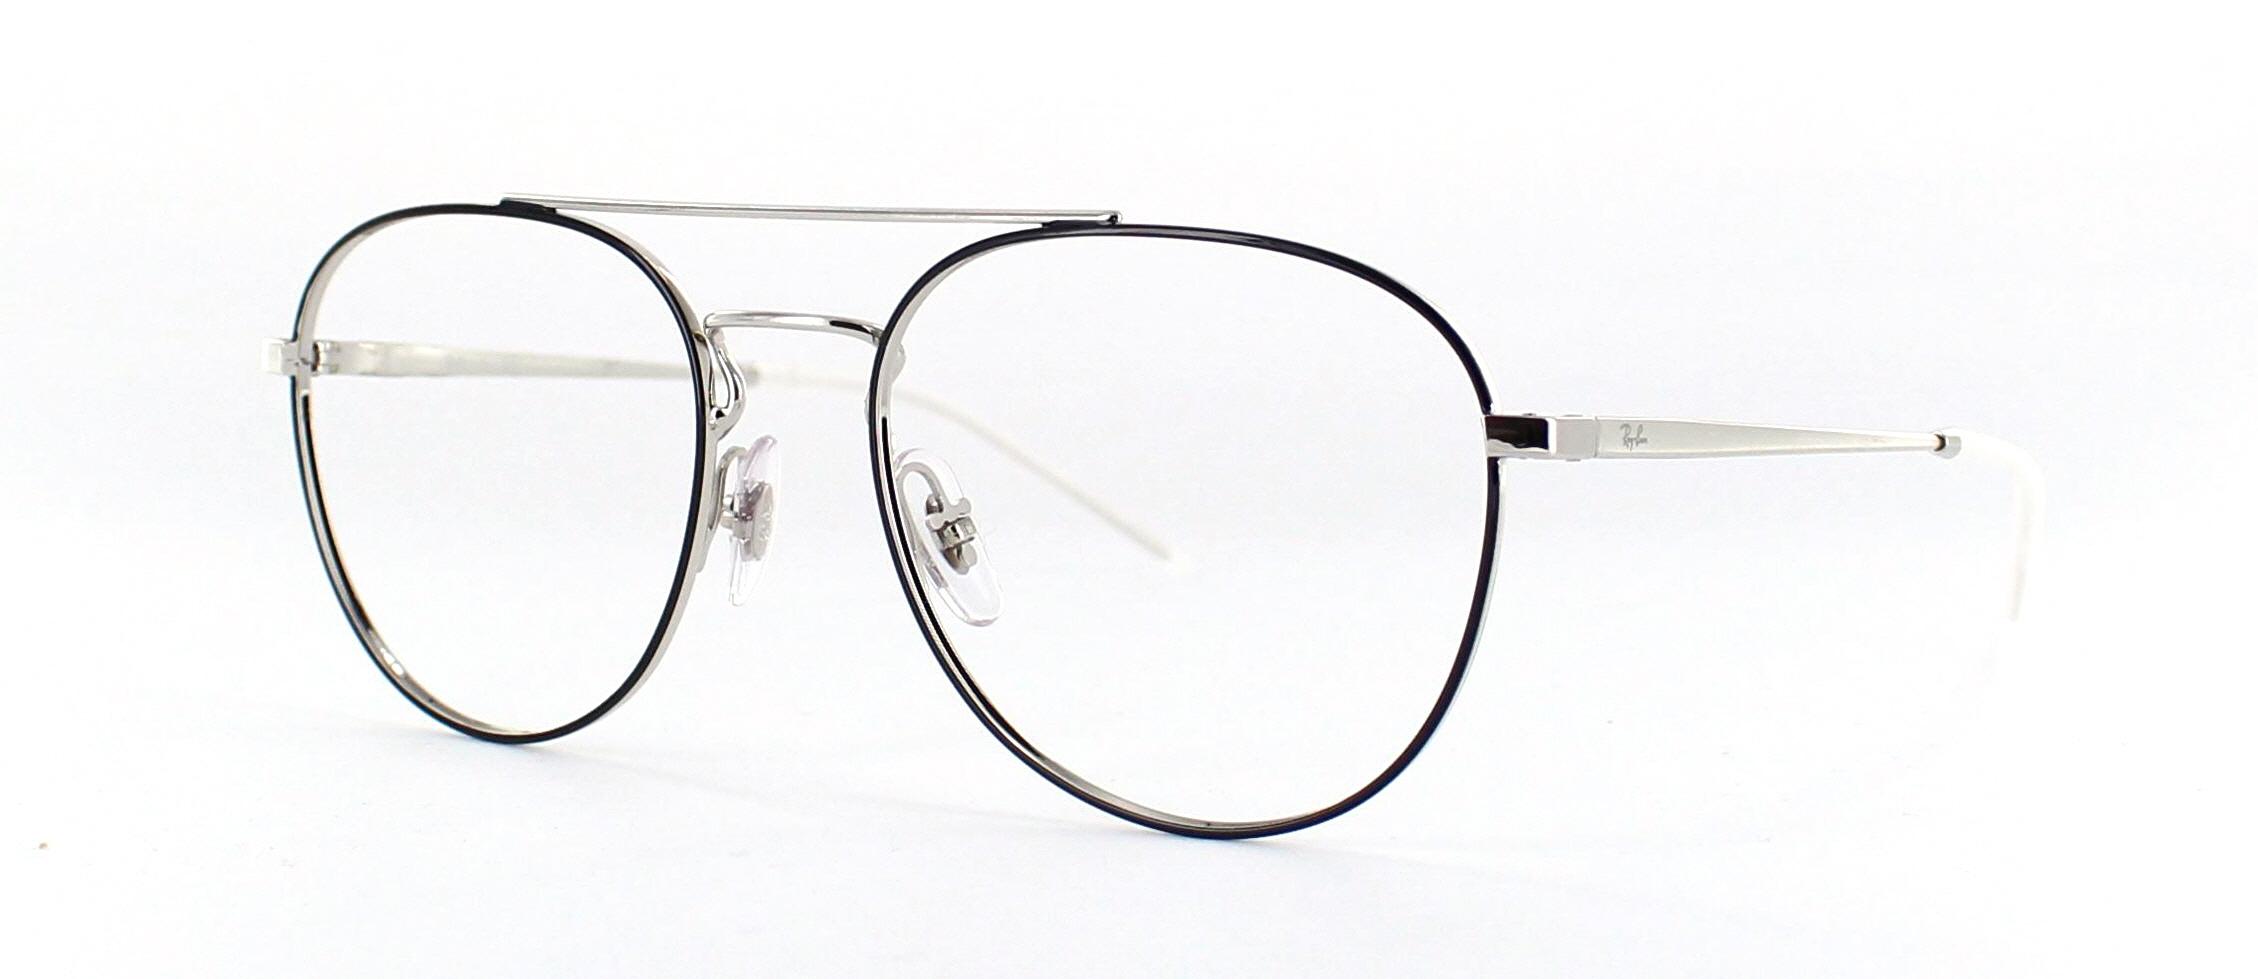 Ray Ban zilver 1 side